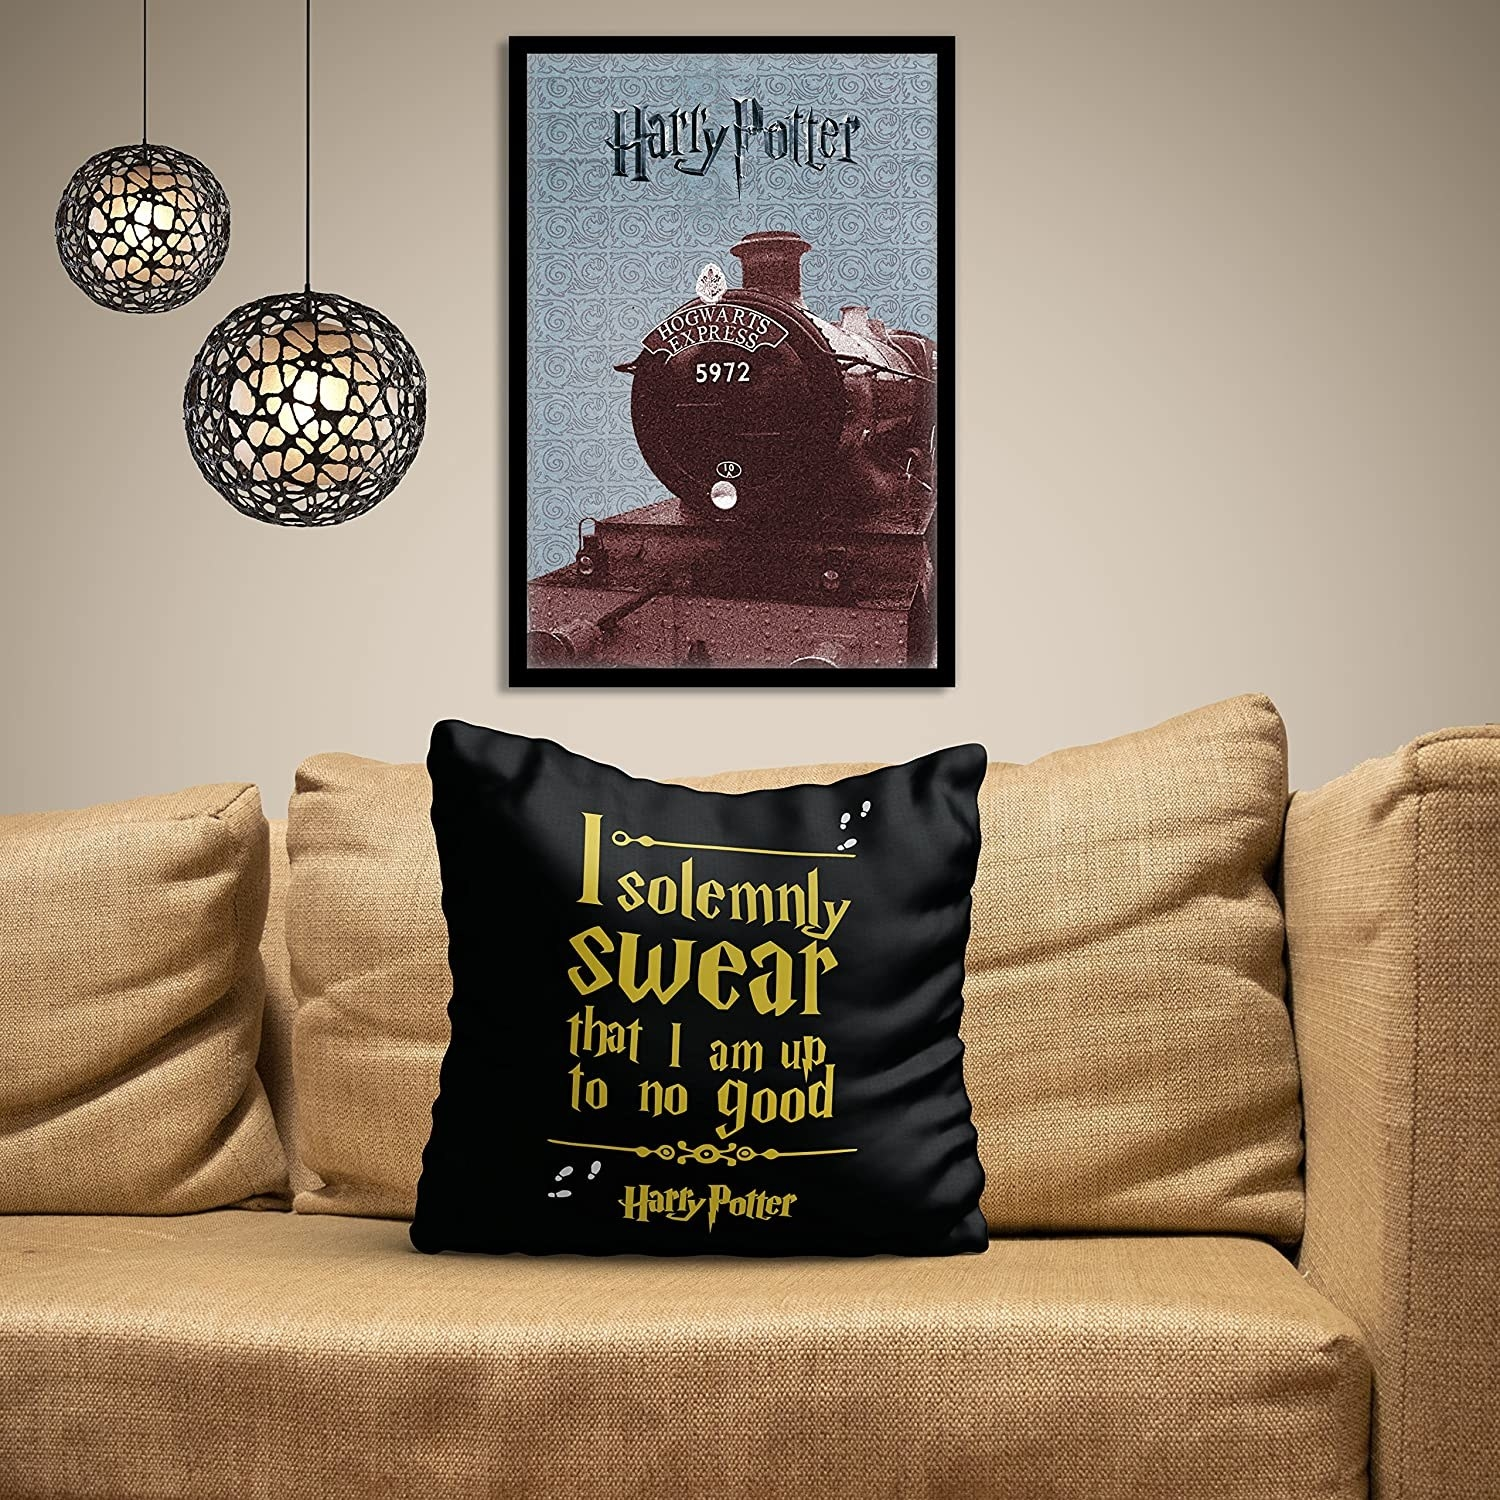 A black satin cushion cover with the quote 'I solemnly swear I am upto no good' written on it, placed on a sofa.